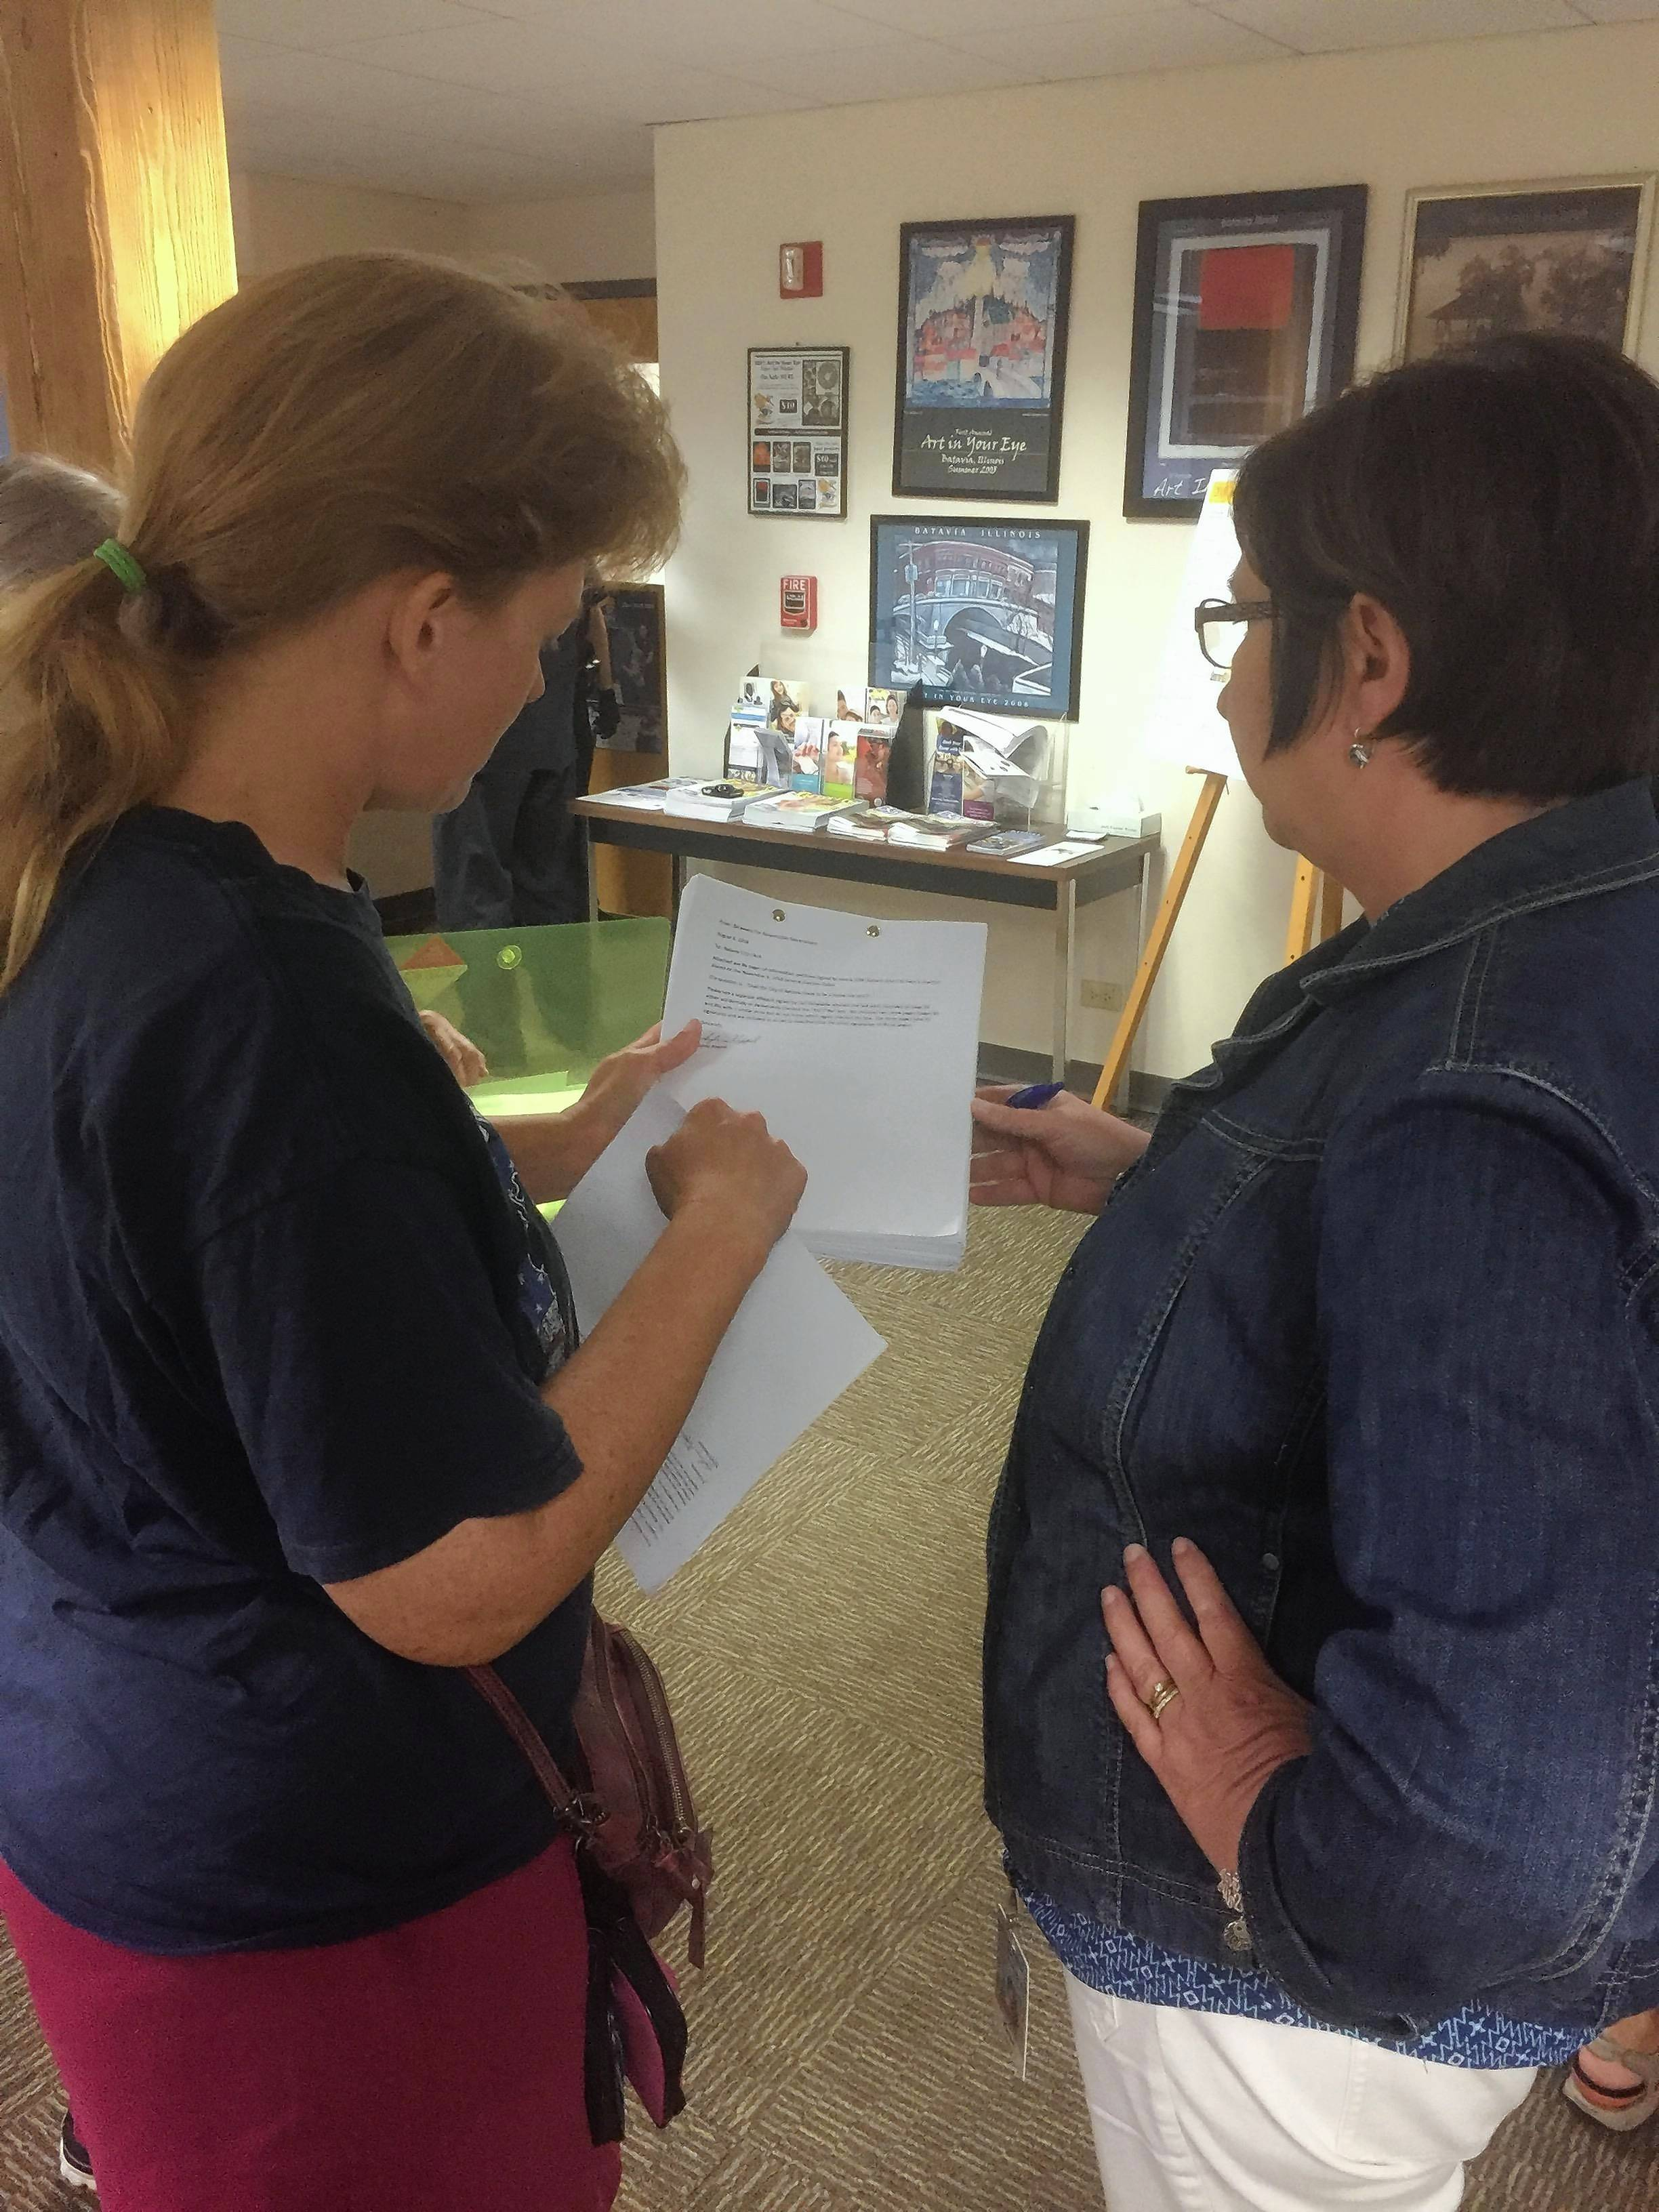 Sylvia Keppel of Batavia, left, explains to city administrative assistant Karen Morley an affidavit she submitted Monday along with a petition for a referendum question to remove the city's home-rule authority.